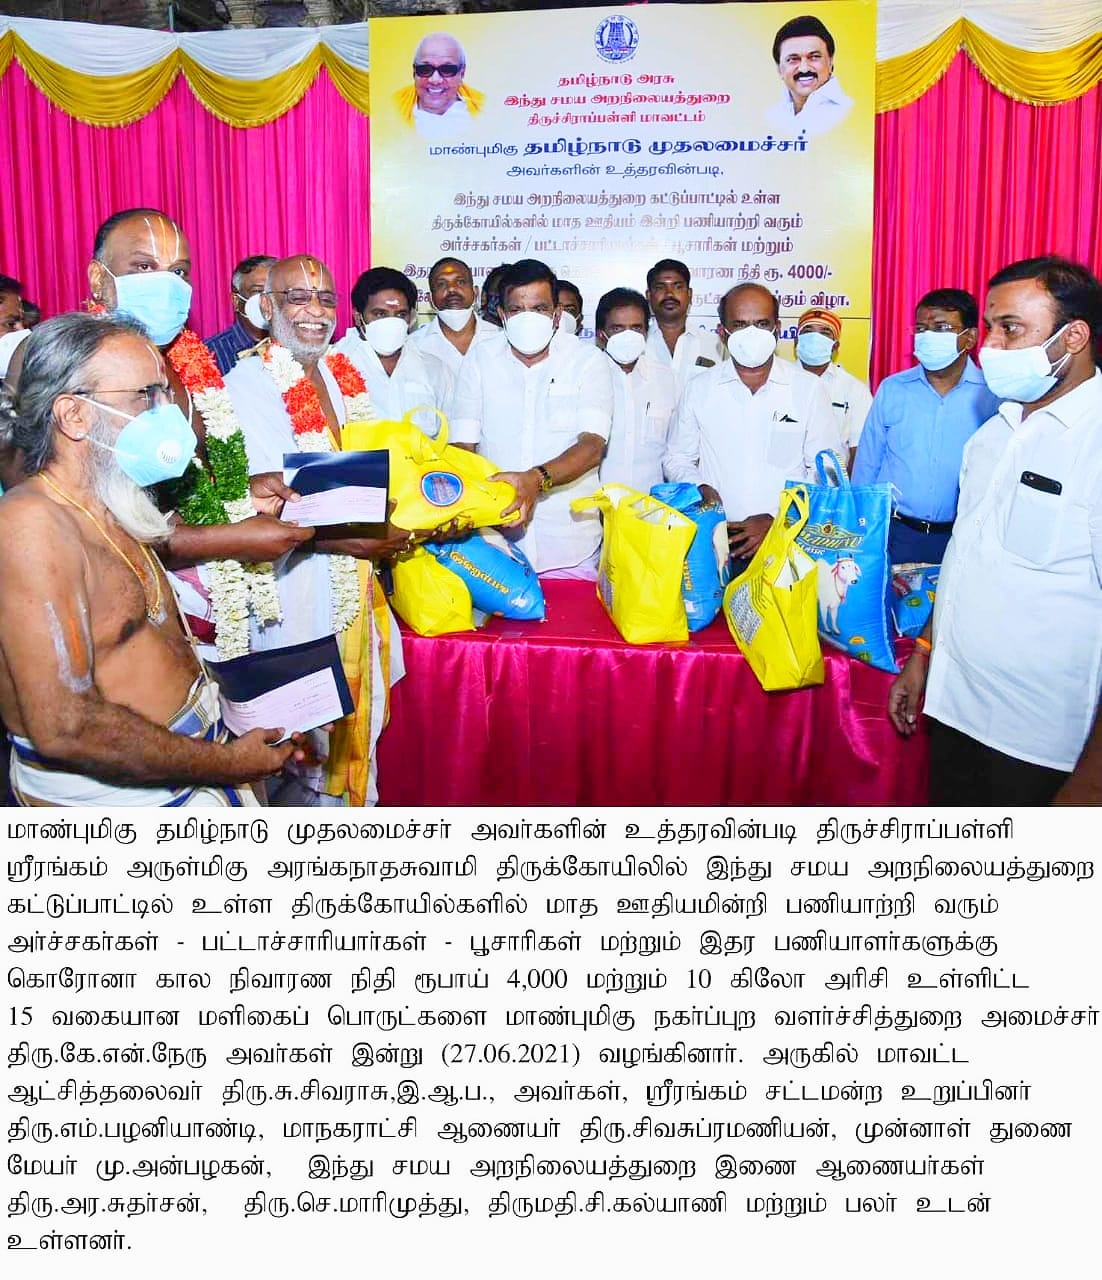 Hon'ble Urban Development Ministers Distributes Cashs Dole , Grocery Items to Temple Priests at Srirangam On 27-06-2021